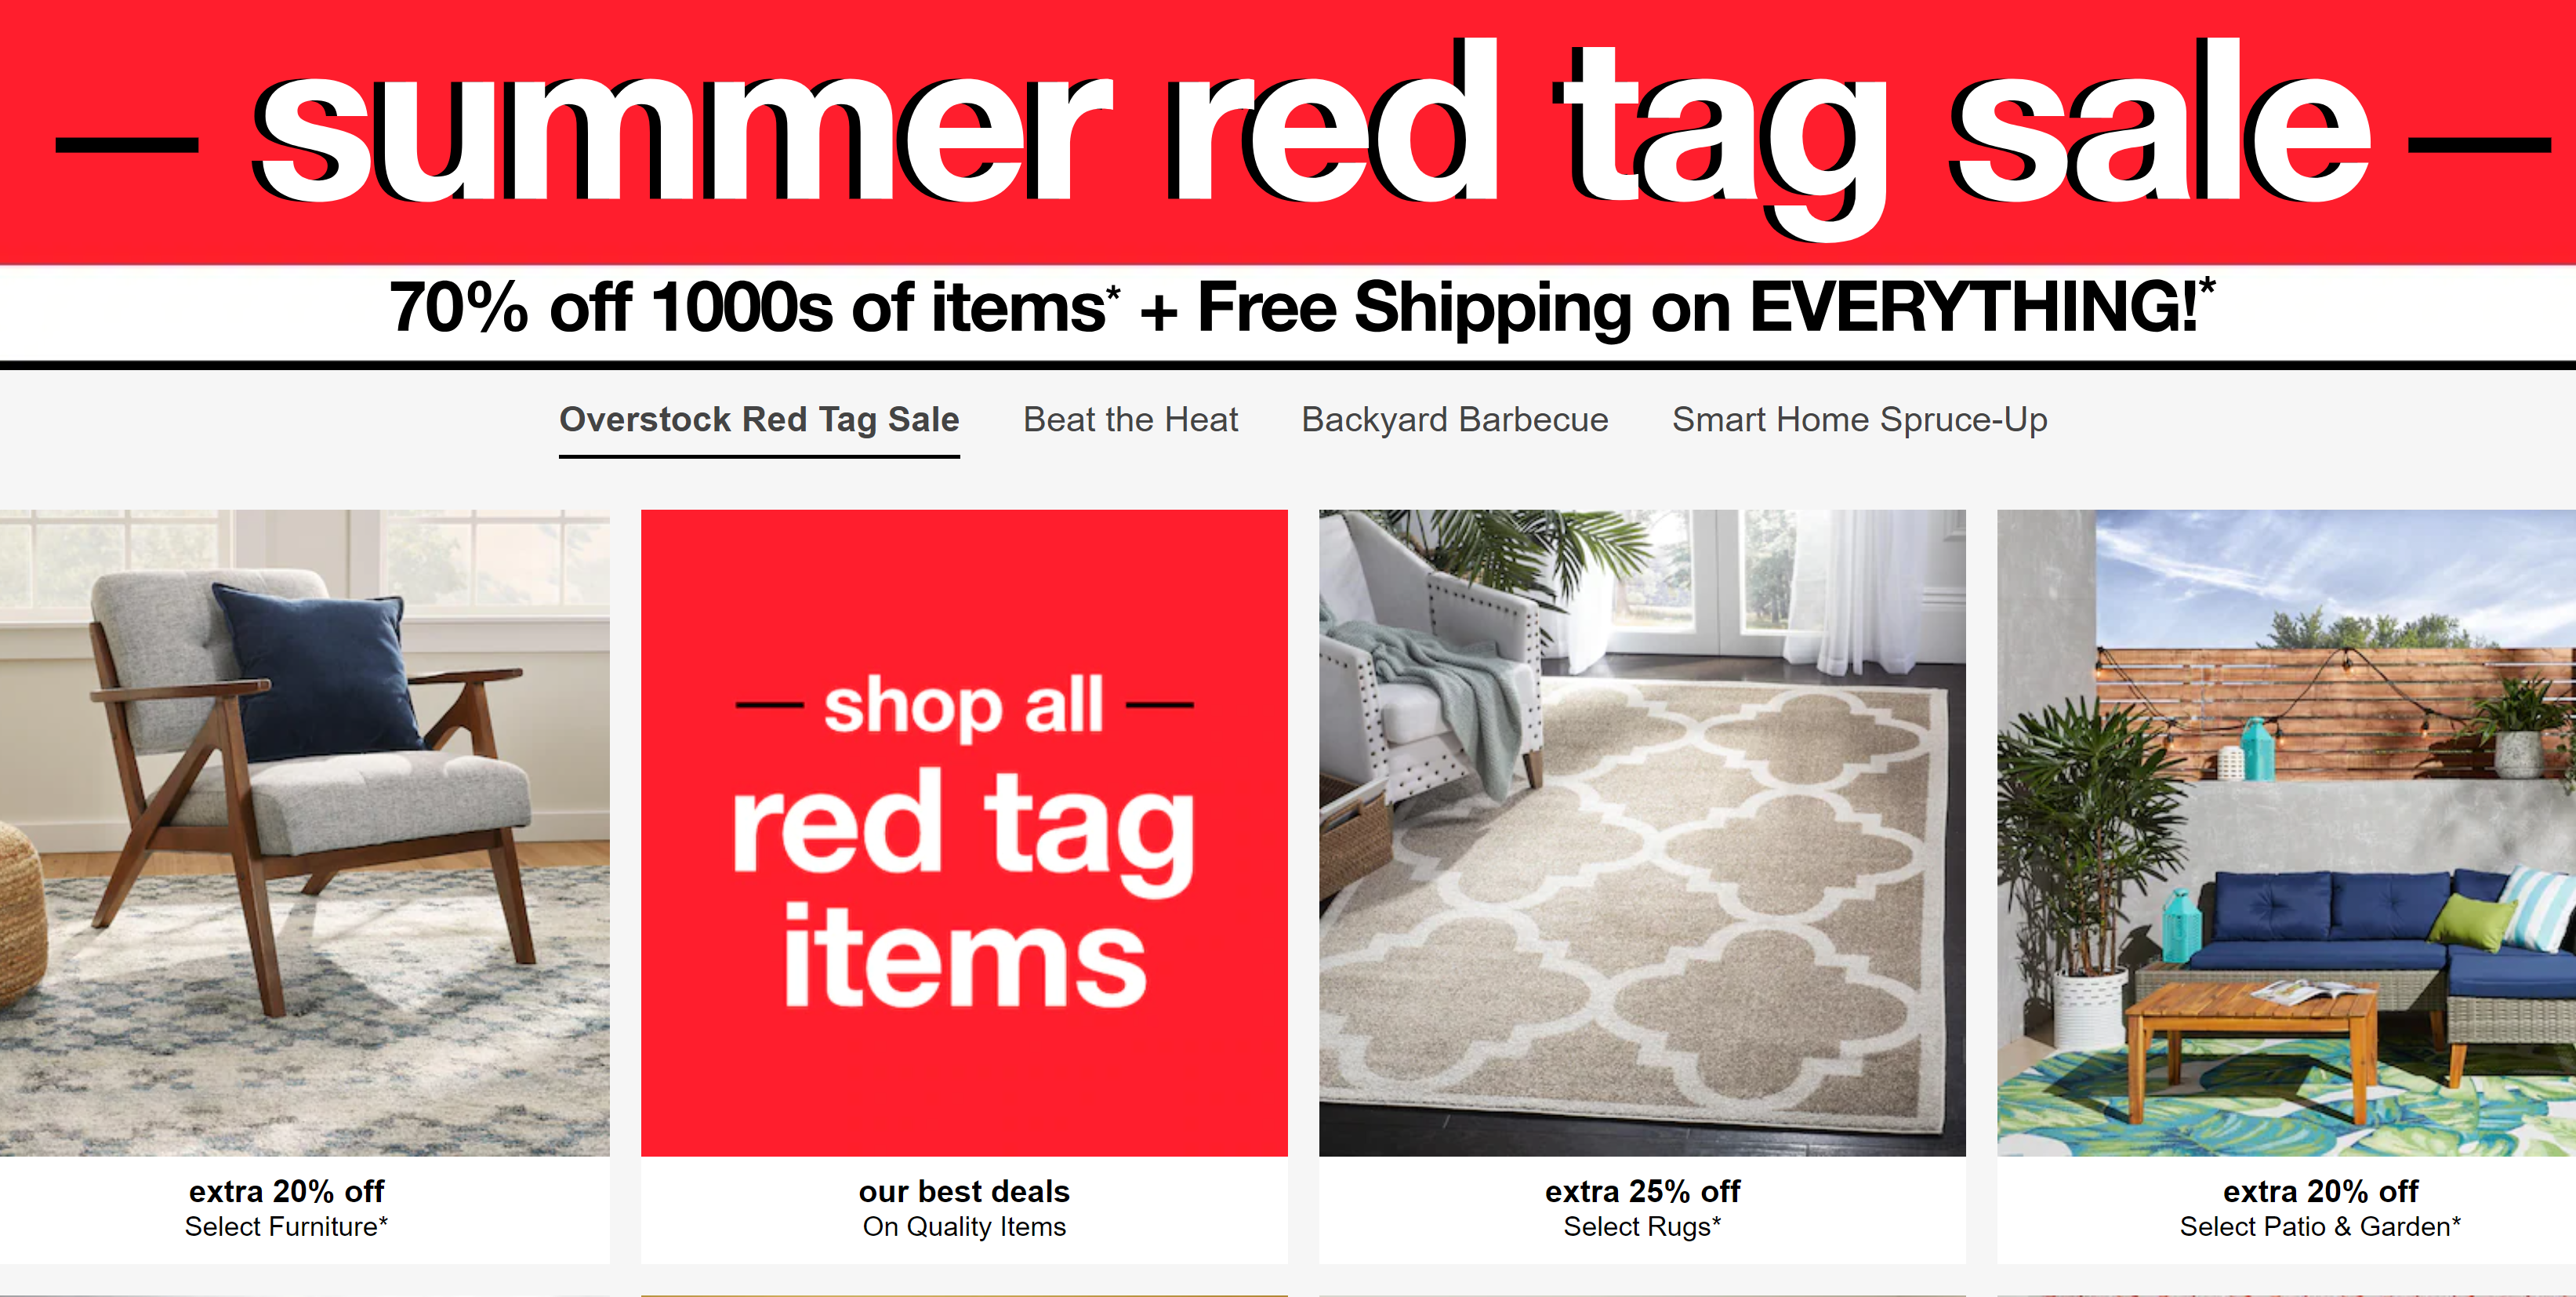 Overstock Summer Red Tag Sale